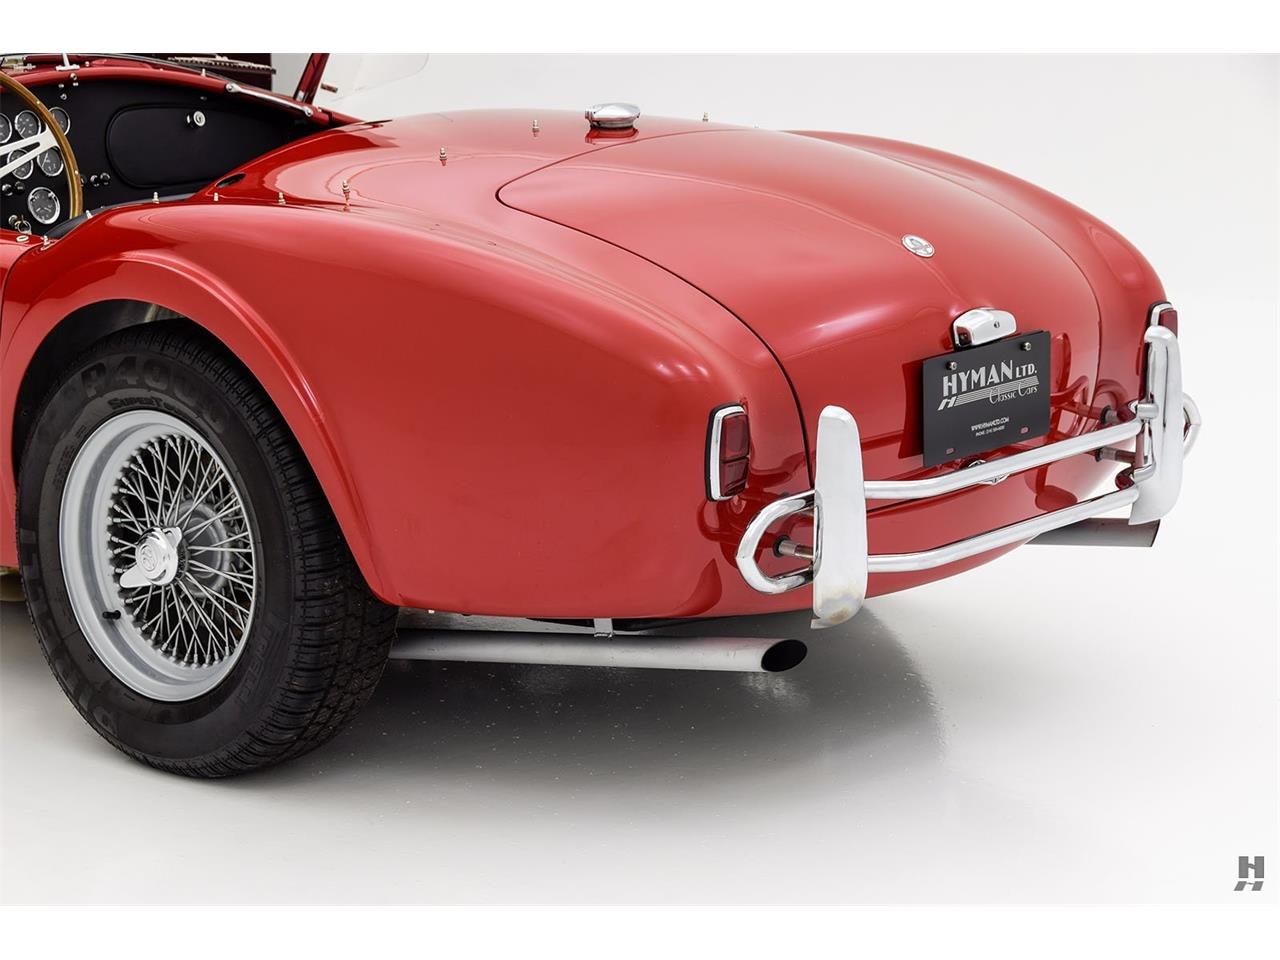 Large Picture of 1963 Cobra located in Saint Louis Missouri Offered by Hyman Ltd. Classic Cars - NP8S